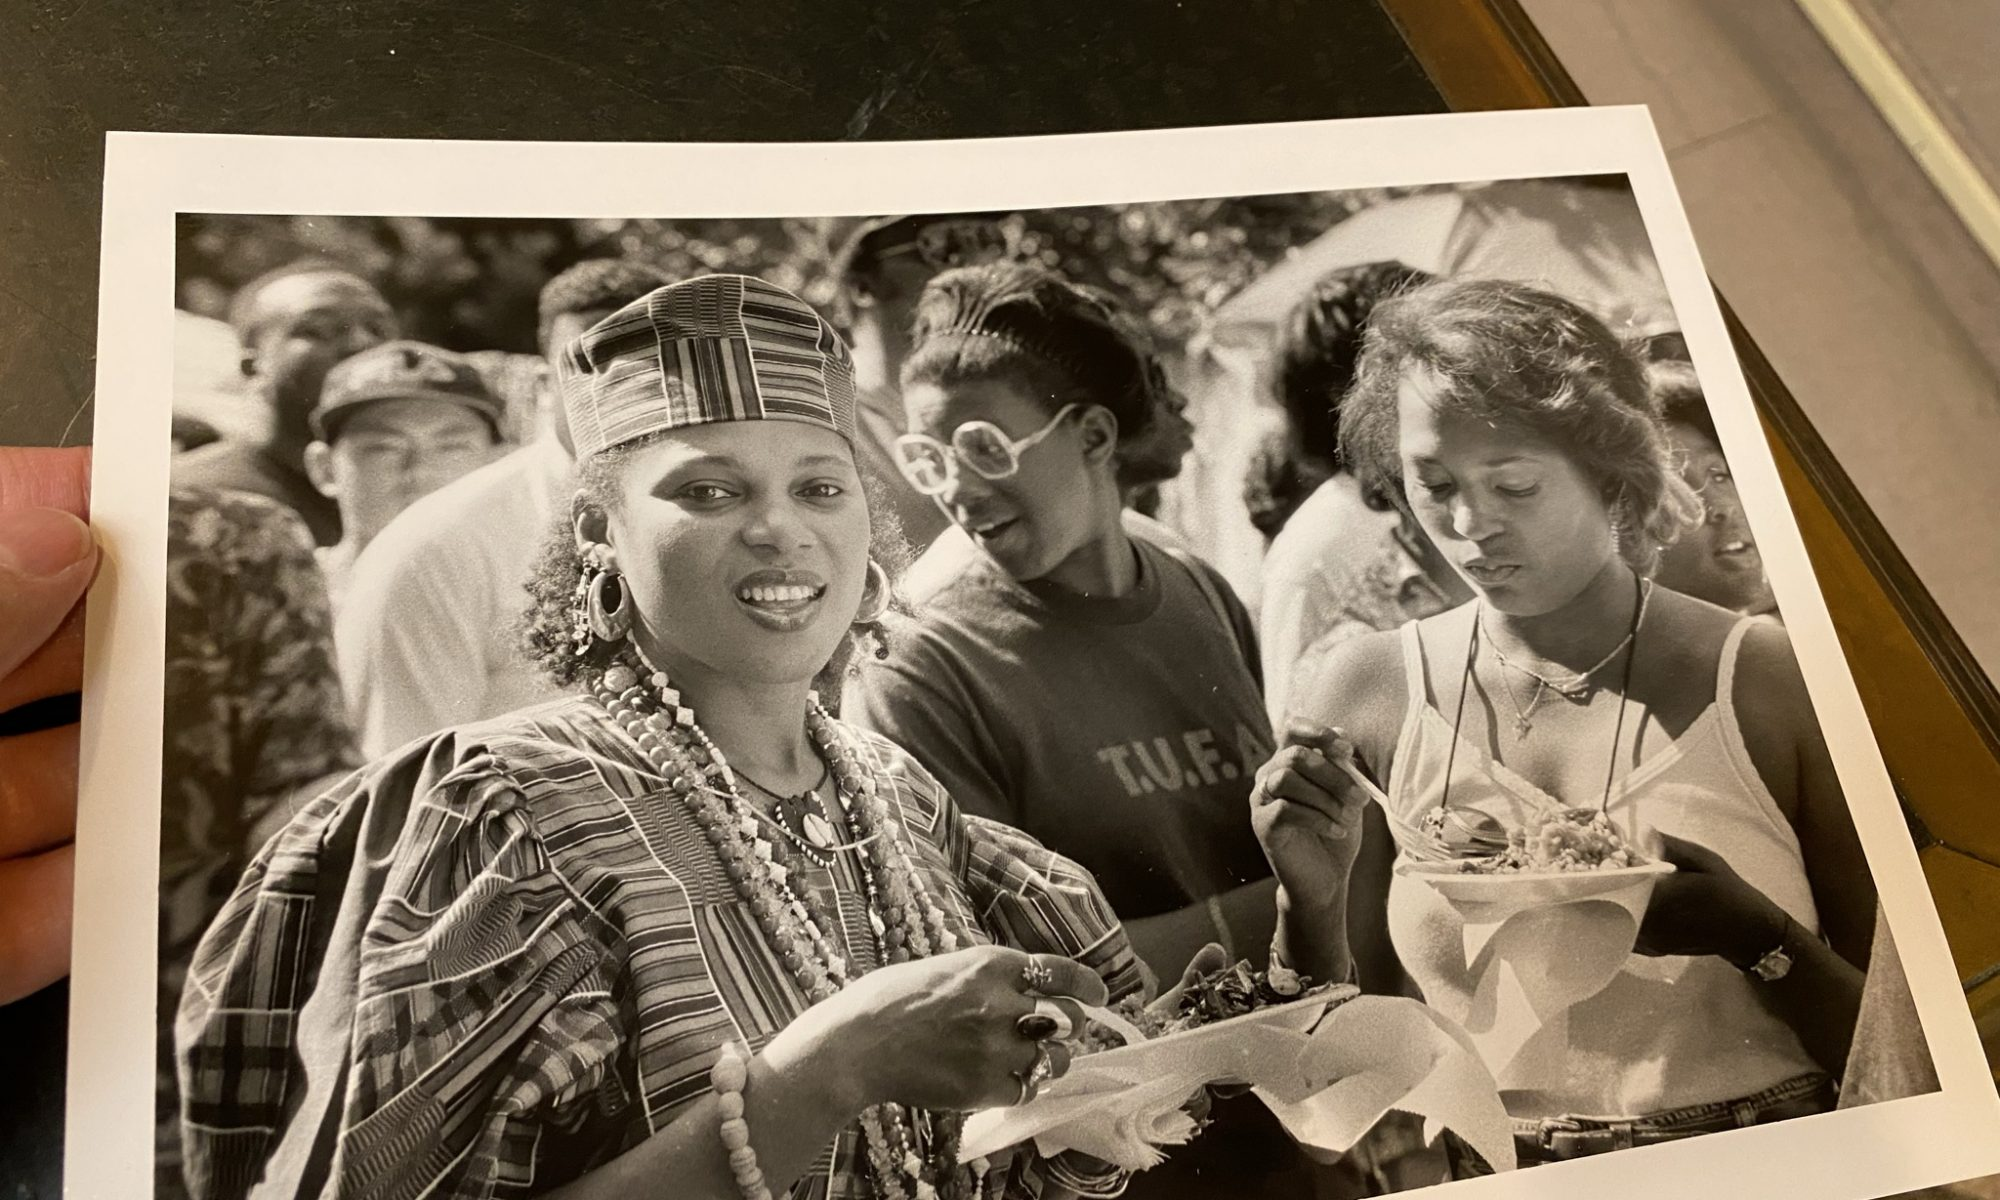 Black and white photo. Tiye Olufumilayo (CQ) (L) and Monica Gaskin (R) are having yellow rice and collard greens. Photograph by Akira Suwa, June 9, year unknown. Courtesy of Free Library of Philadelphia, Print and Picture Collection.